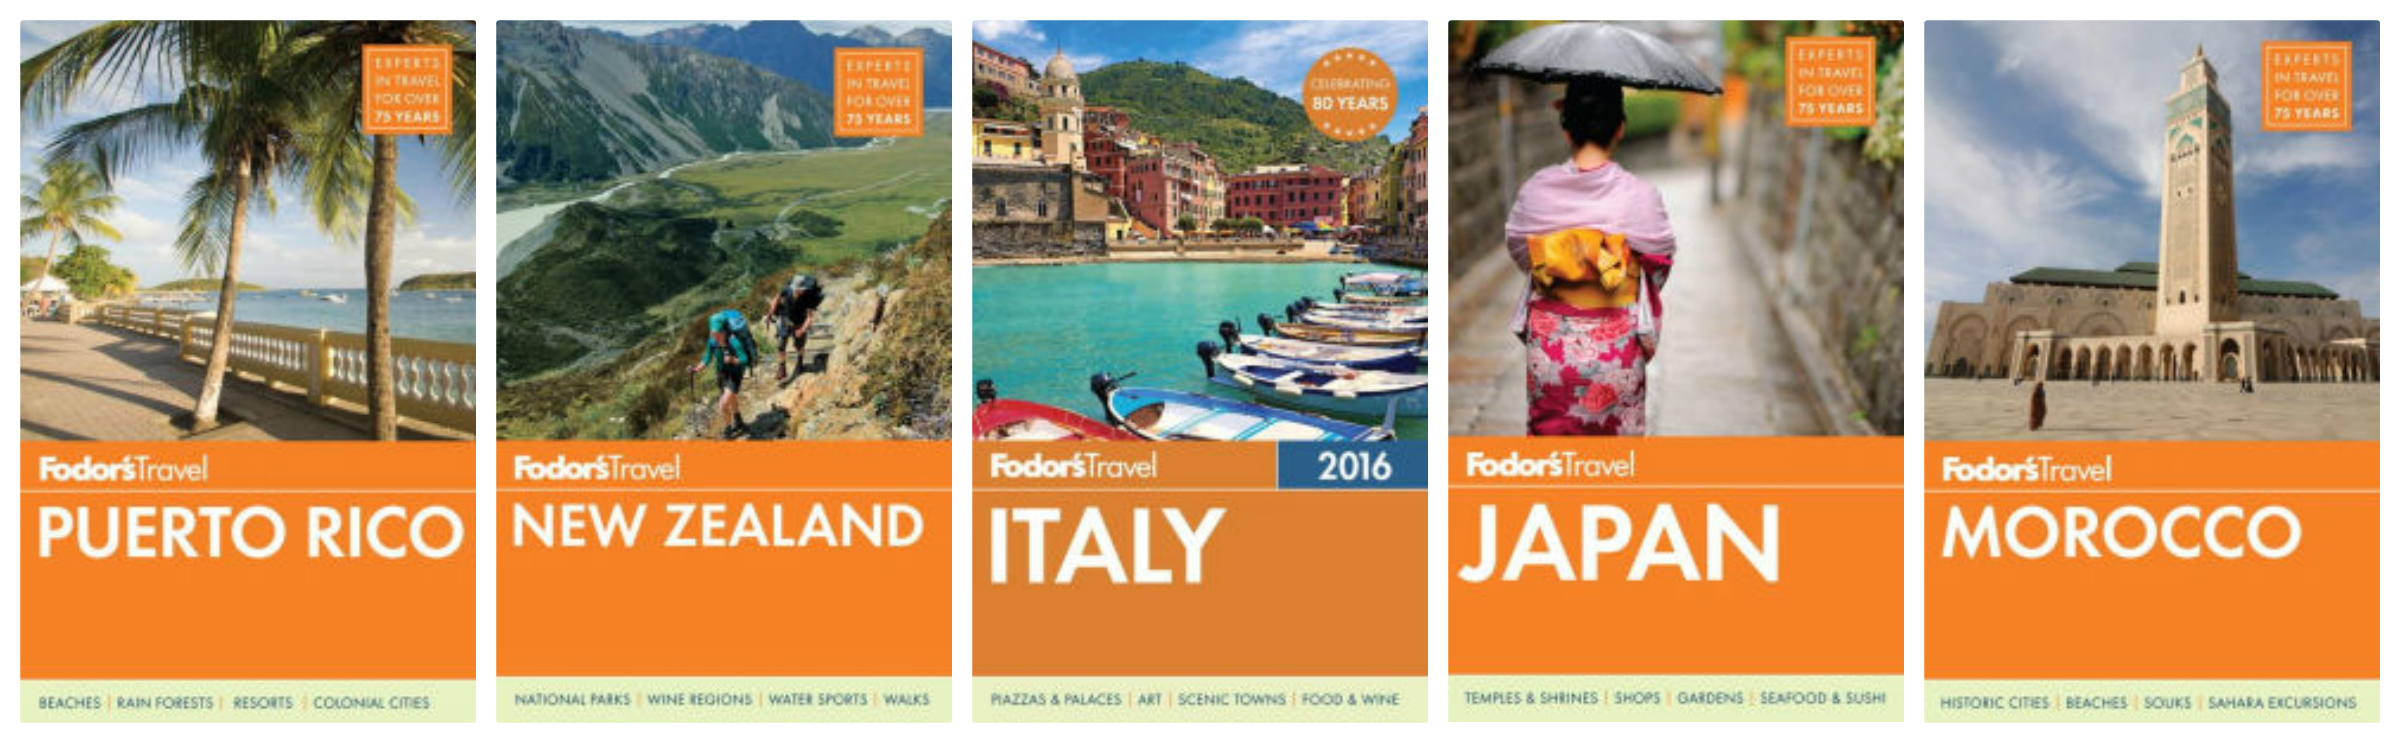 I love Fodor's travel guidebooks.